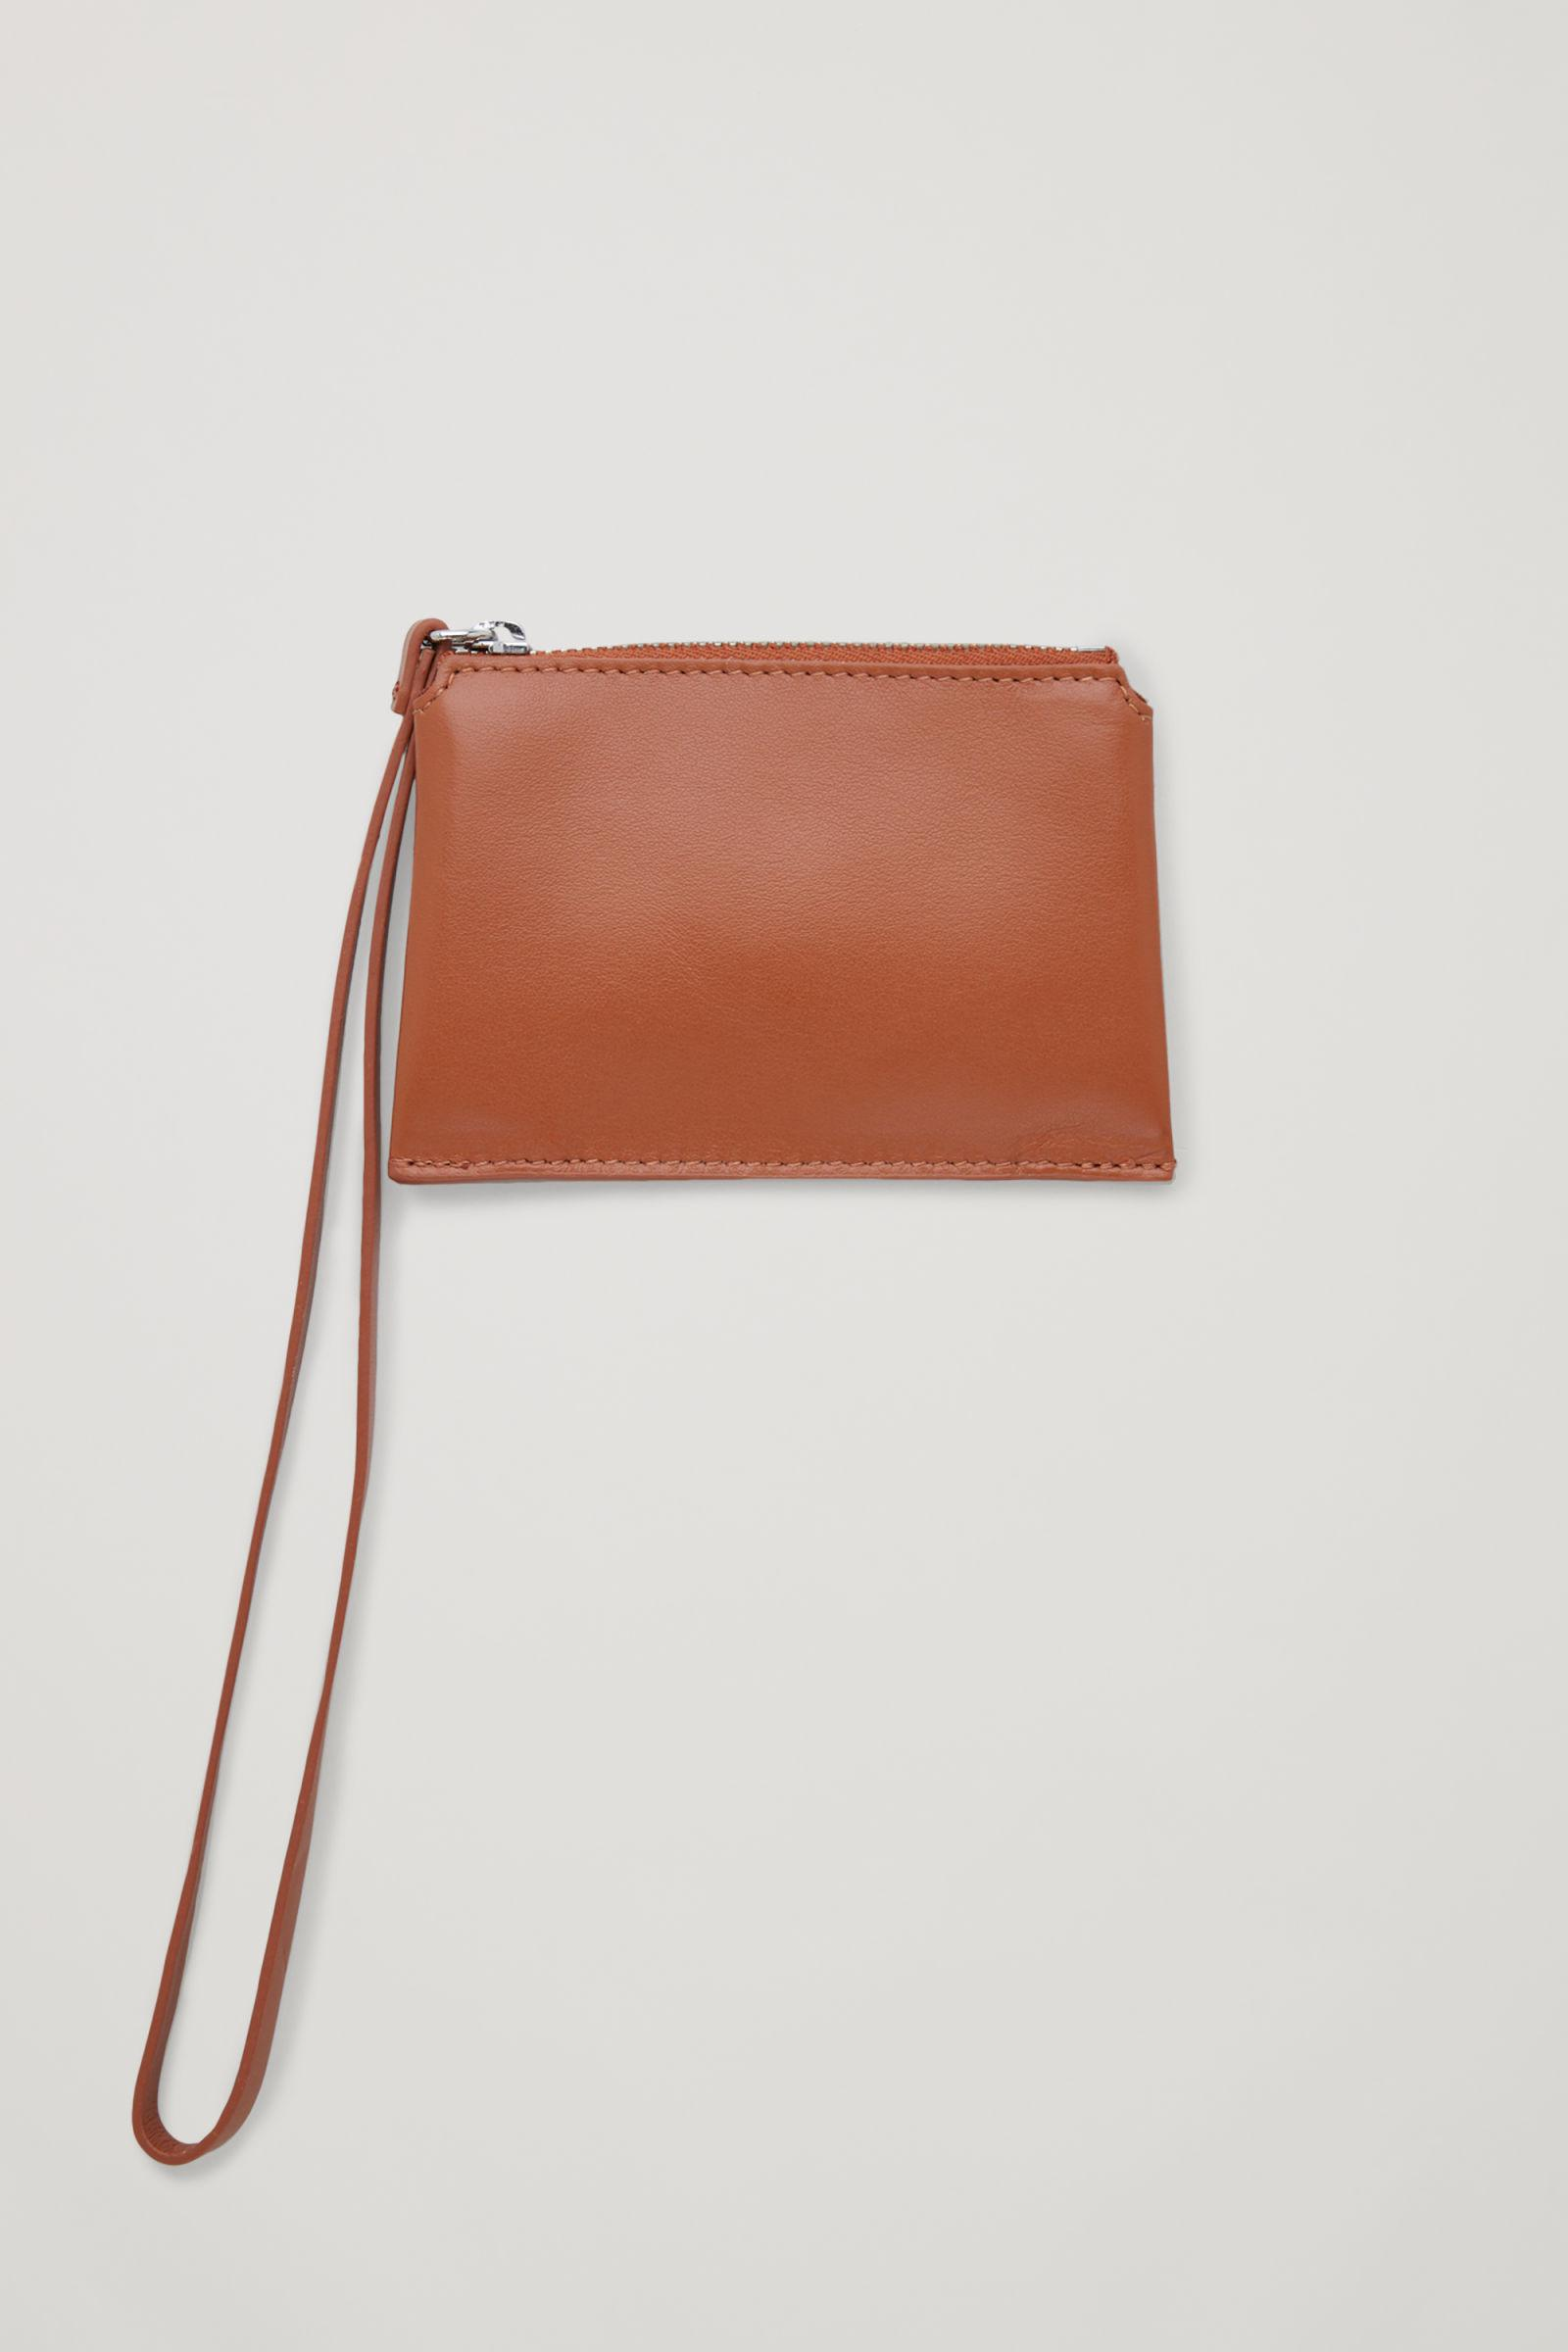 LEATHER COIN PURSE 0